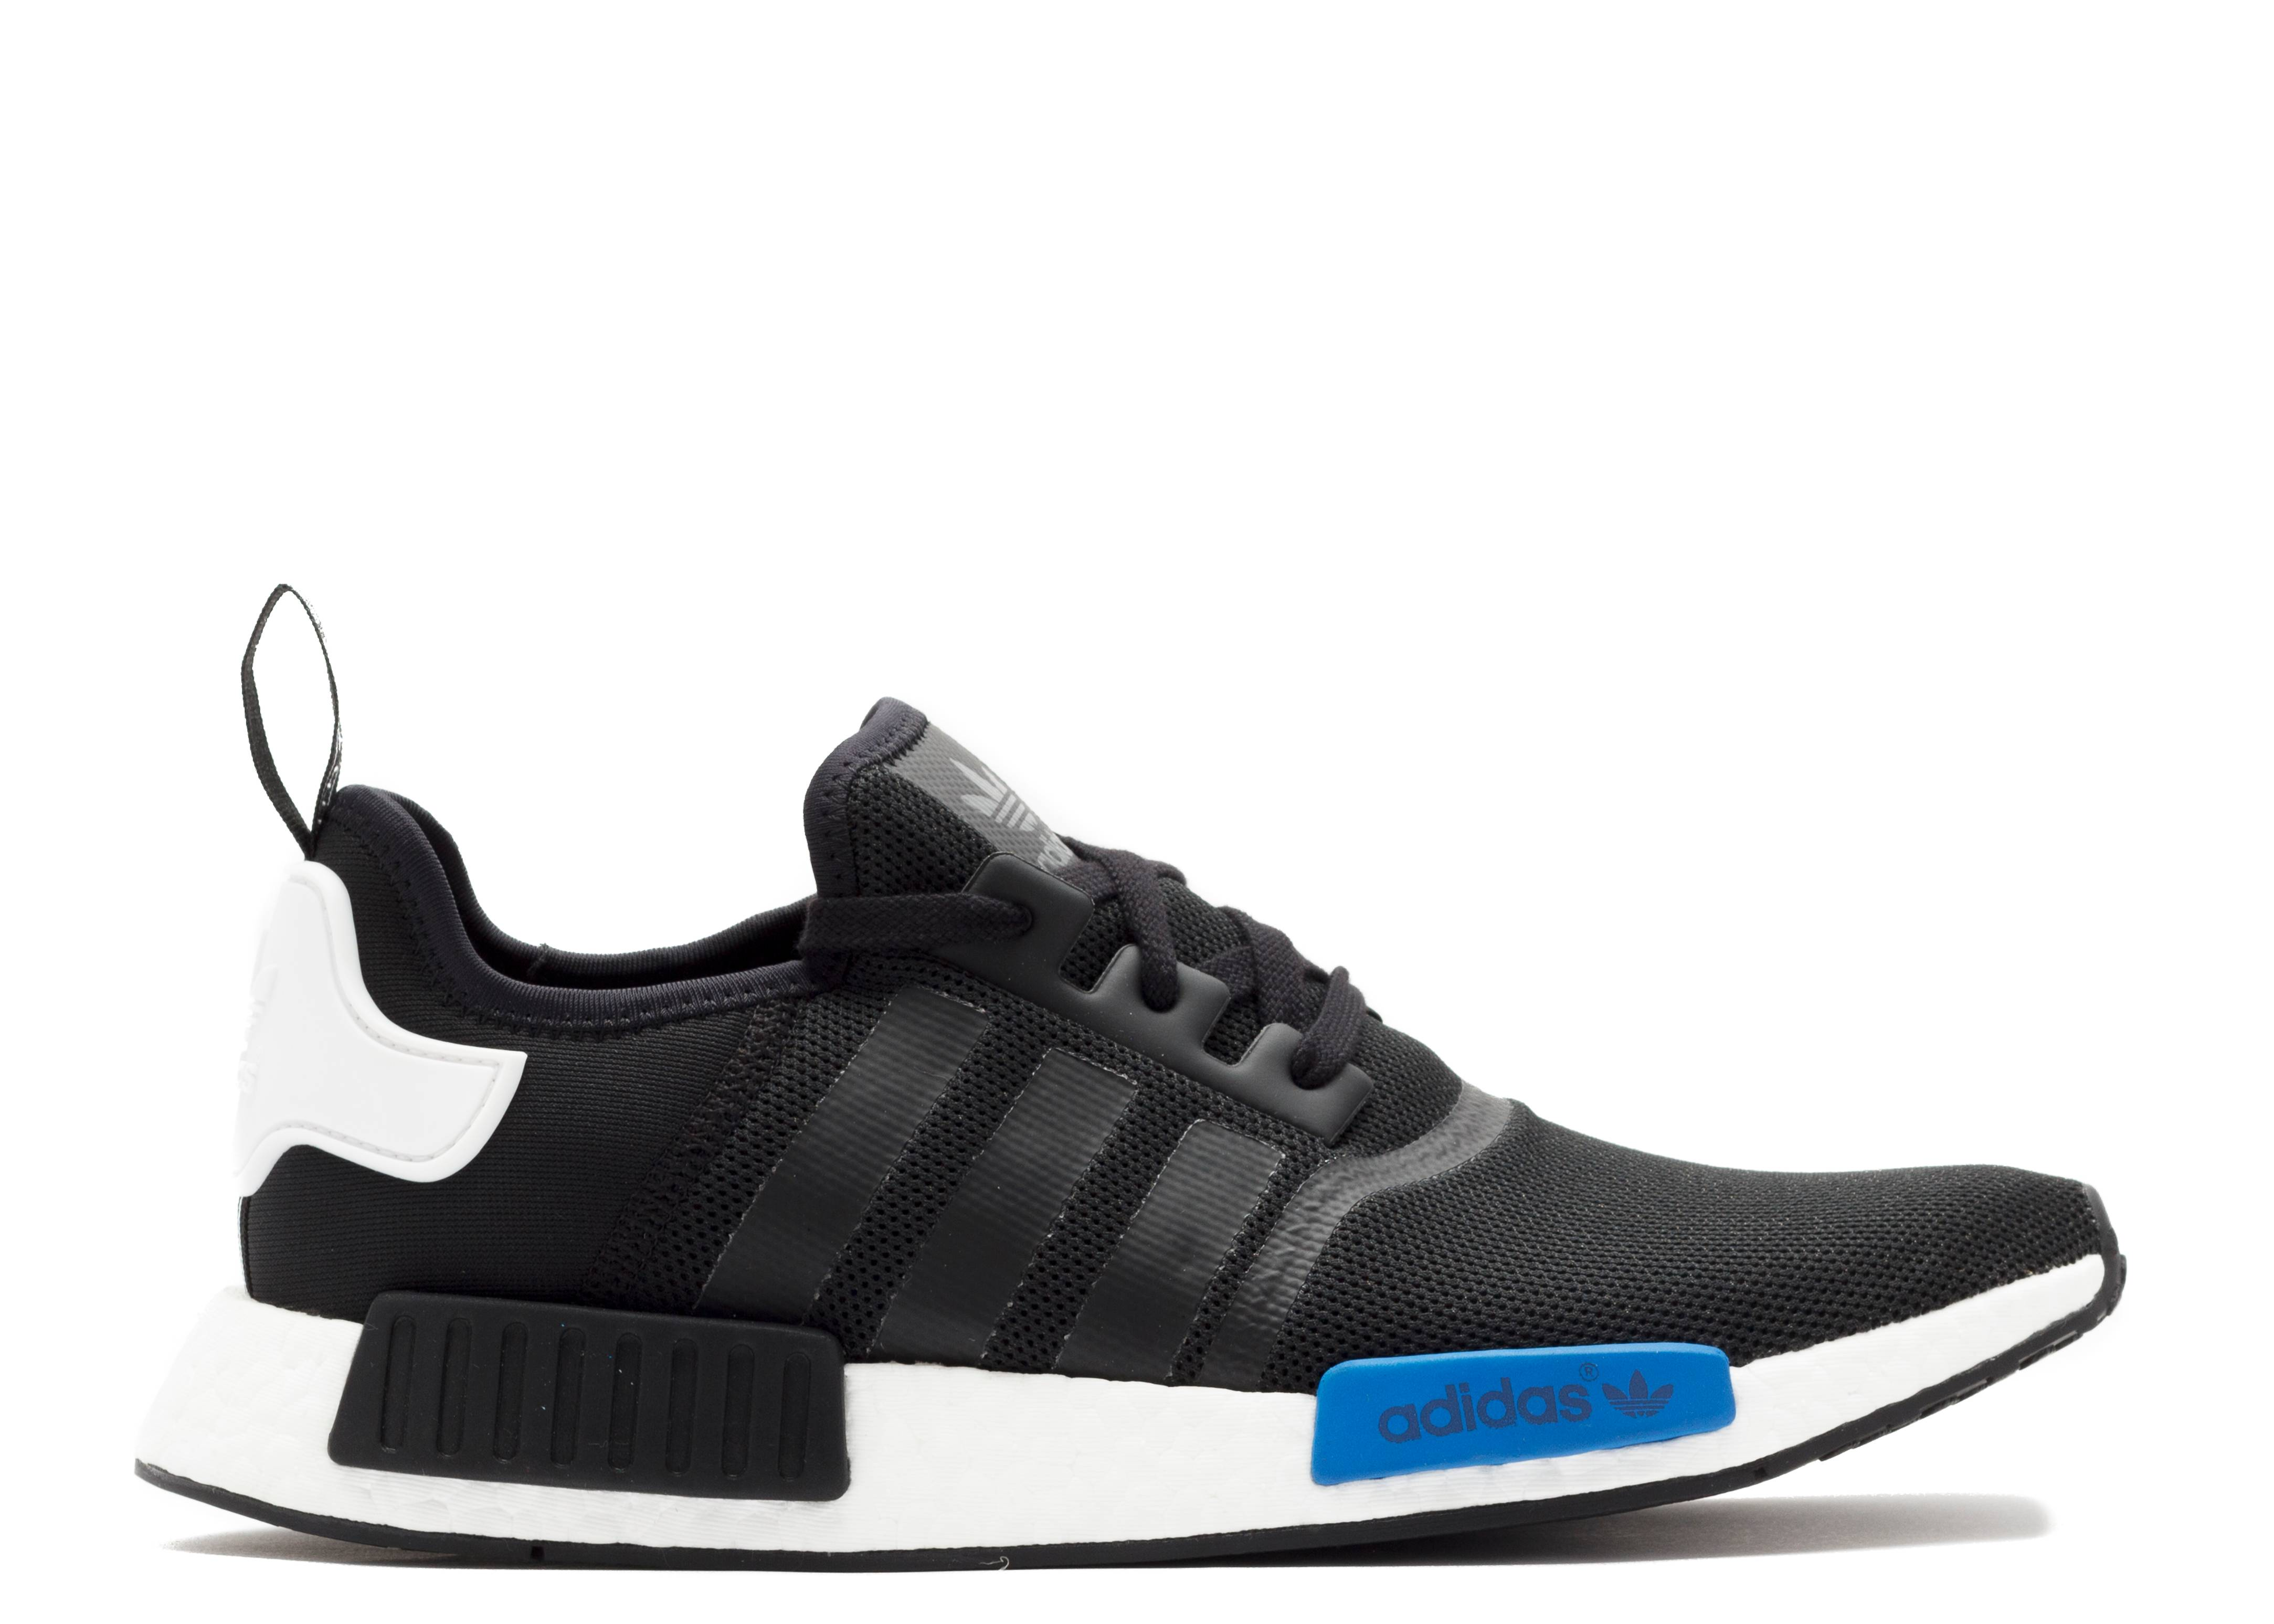 Adidas NMD Runner Core Black Clear Blue Whoosh!